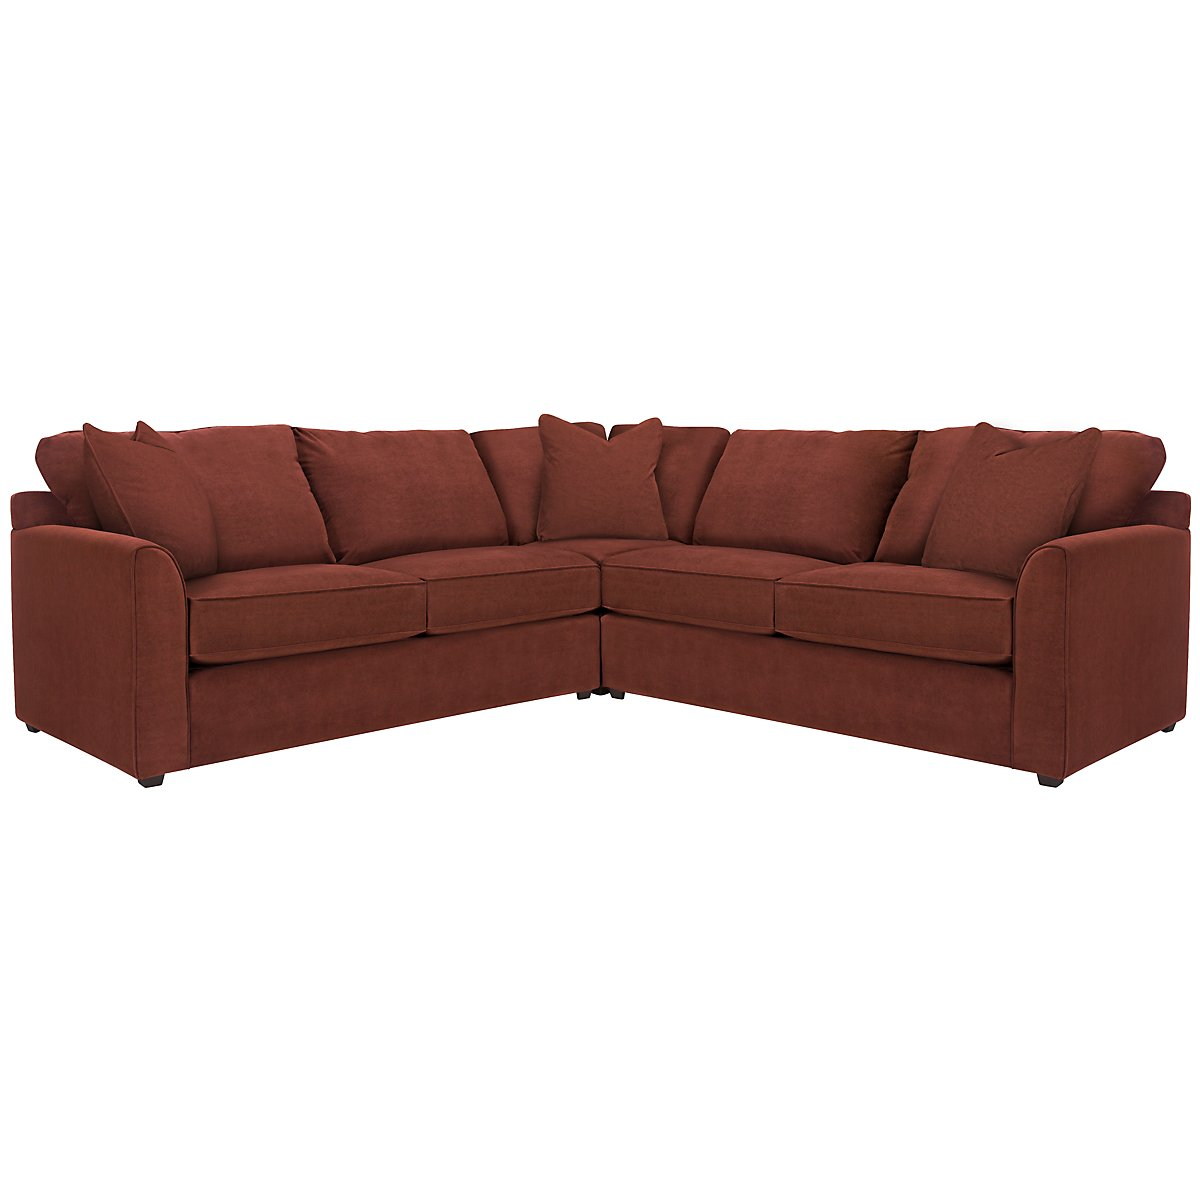 Express3 Red Microfiber Small Two-Arm Sectional